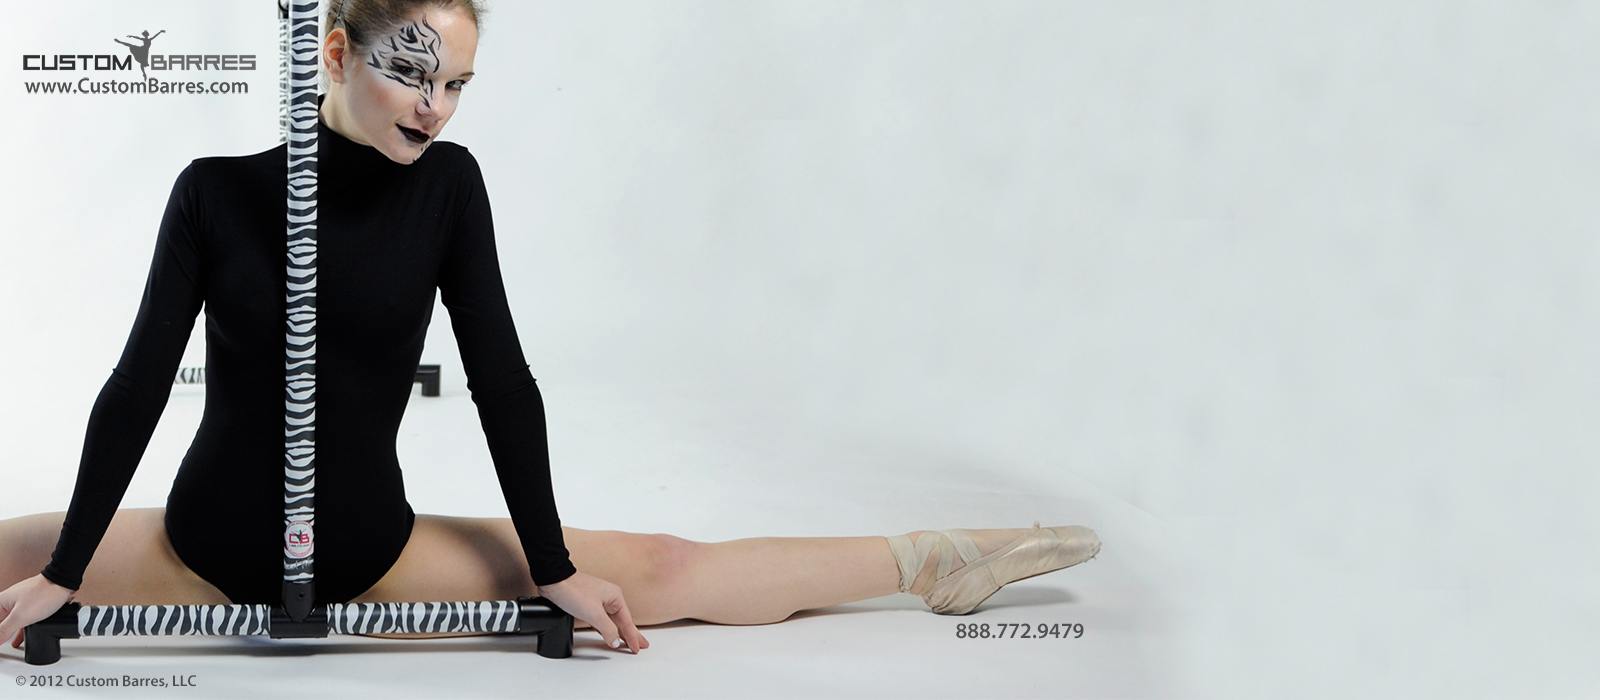 Zebra Barre by Custom Barres